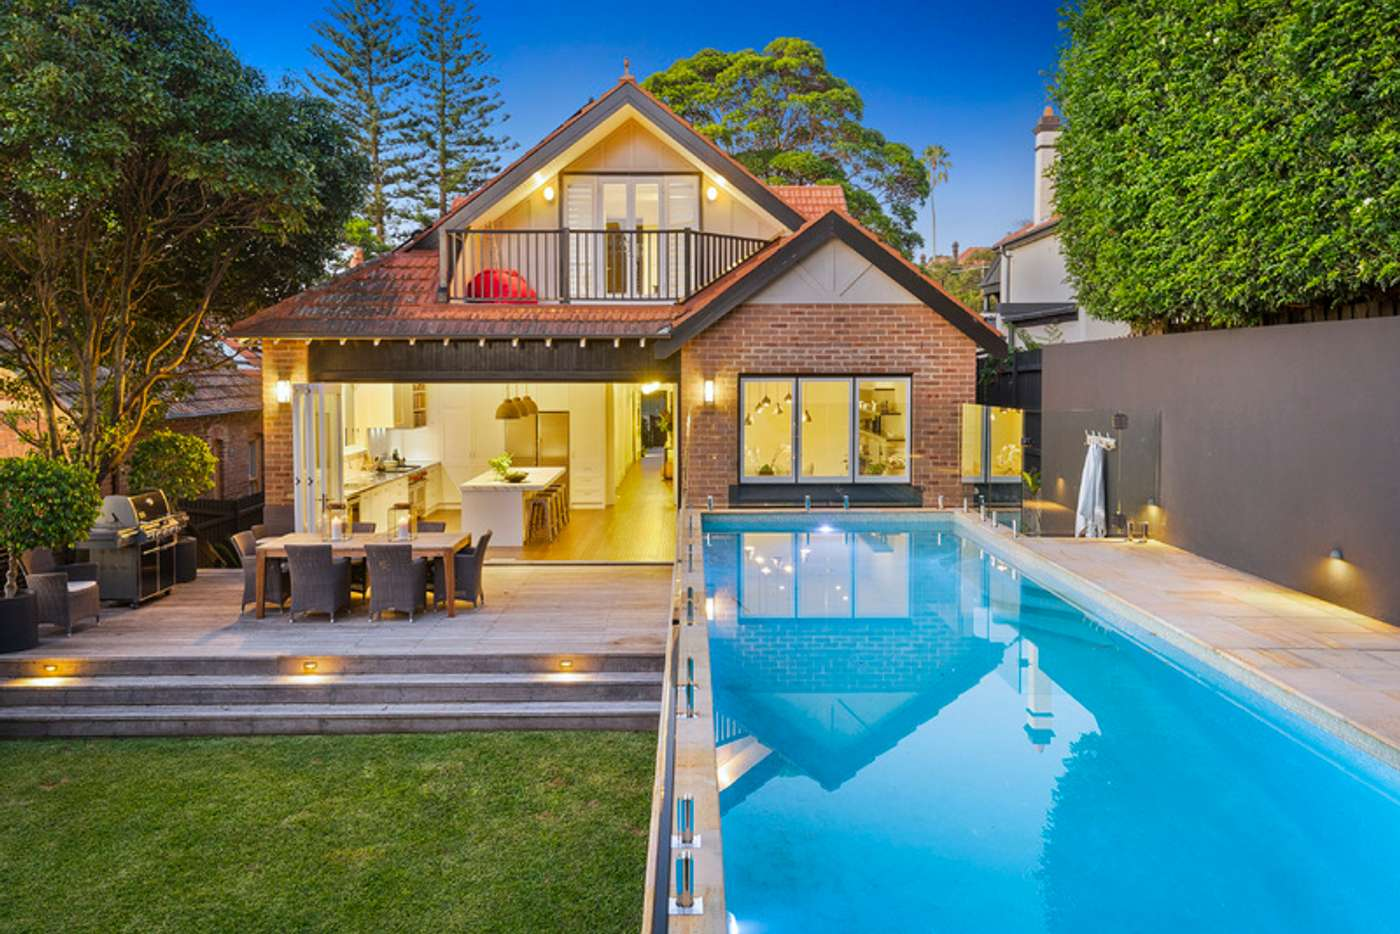 Main view of Homely house listing, 10 Union Street, Mosman NSW 2088